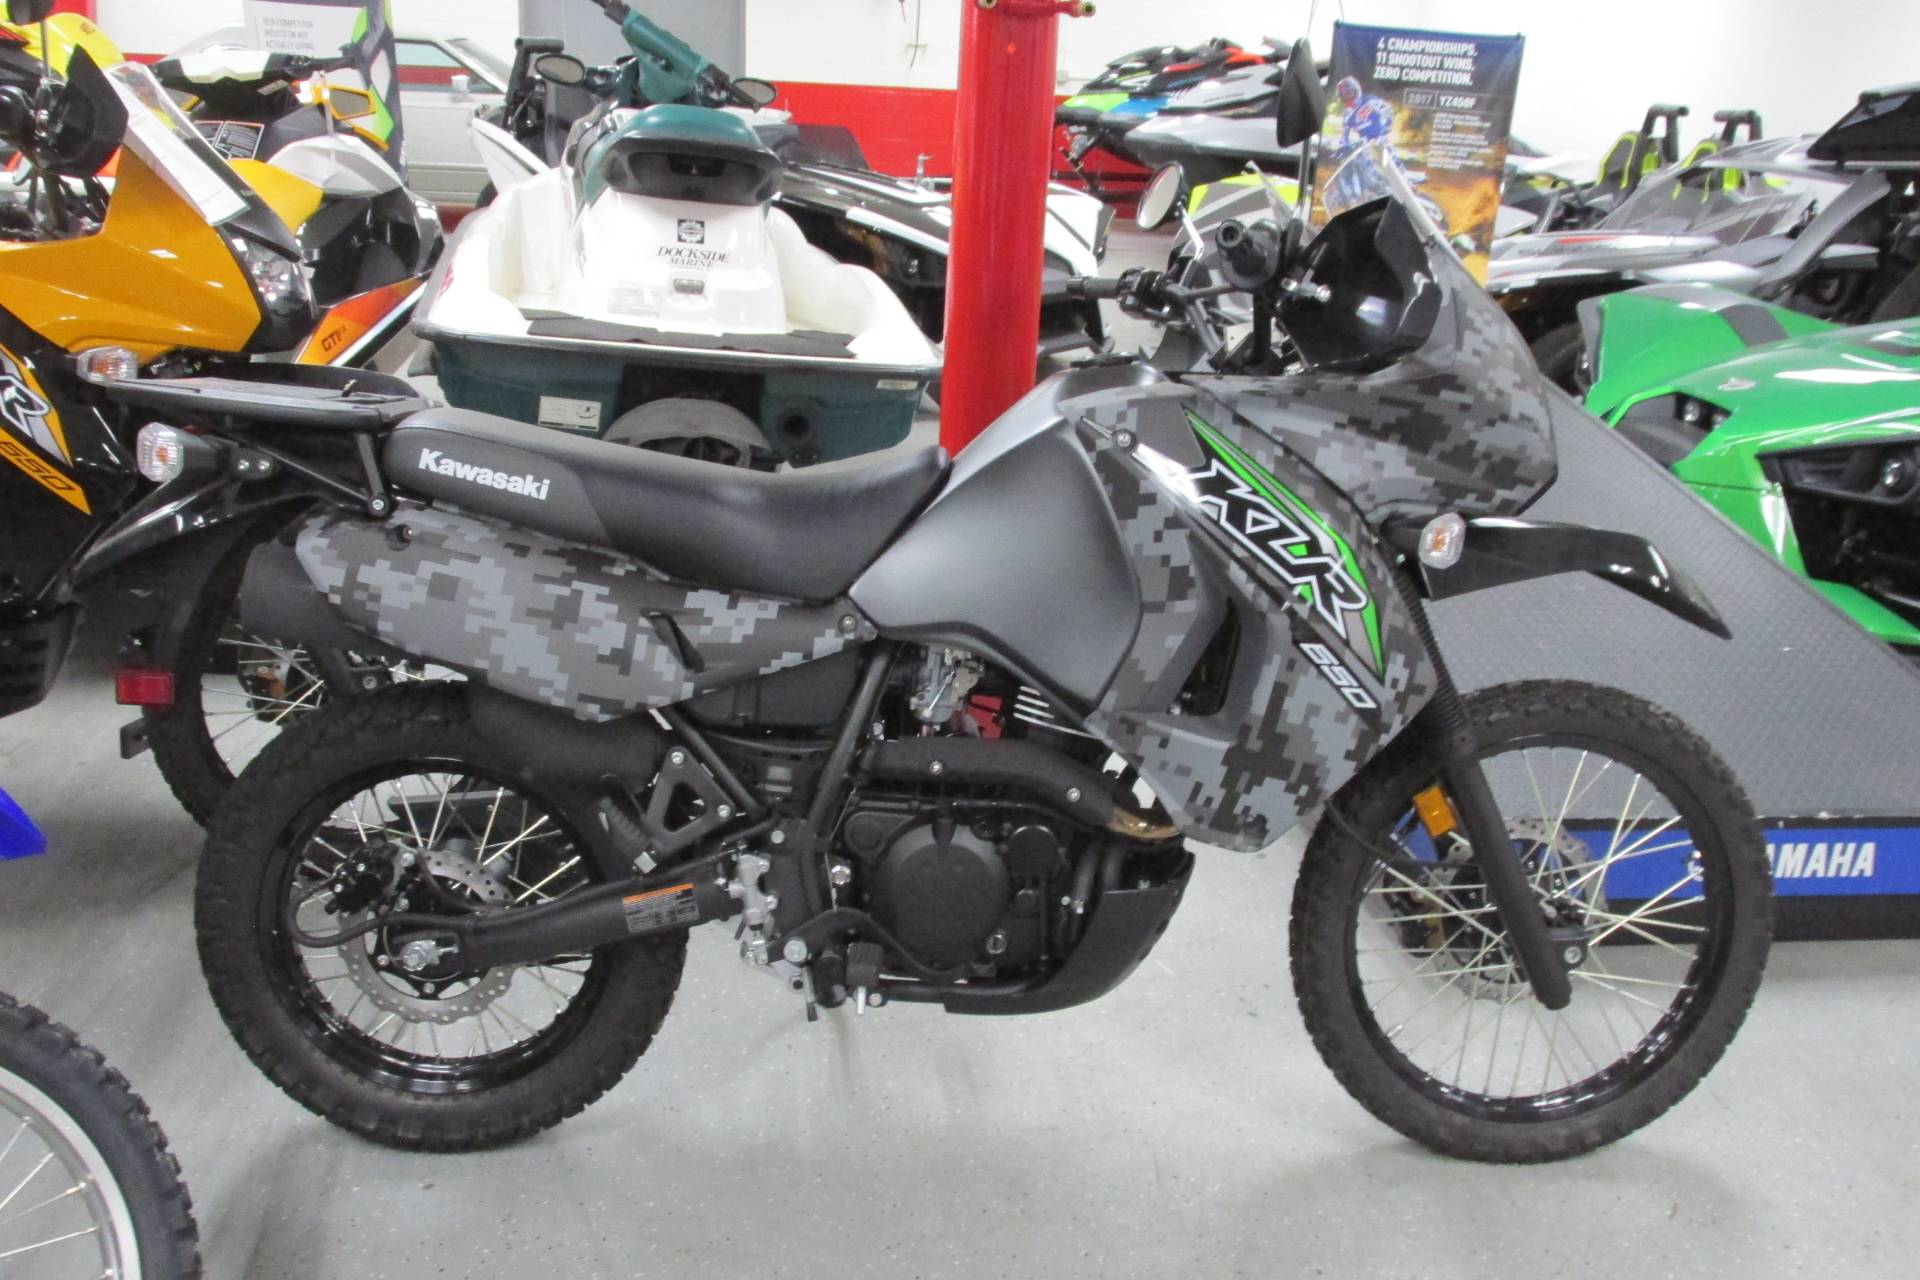 2018 Kawasaki KLR 650 in Springfield, Ohio - Photo 1